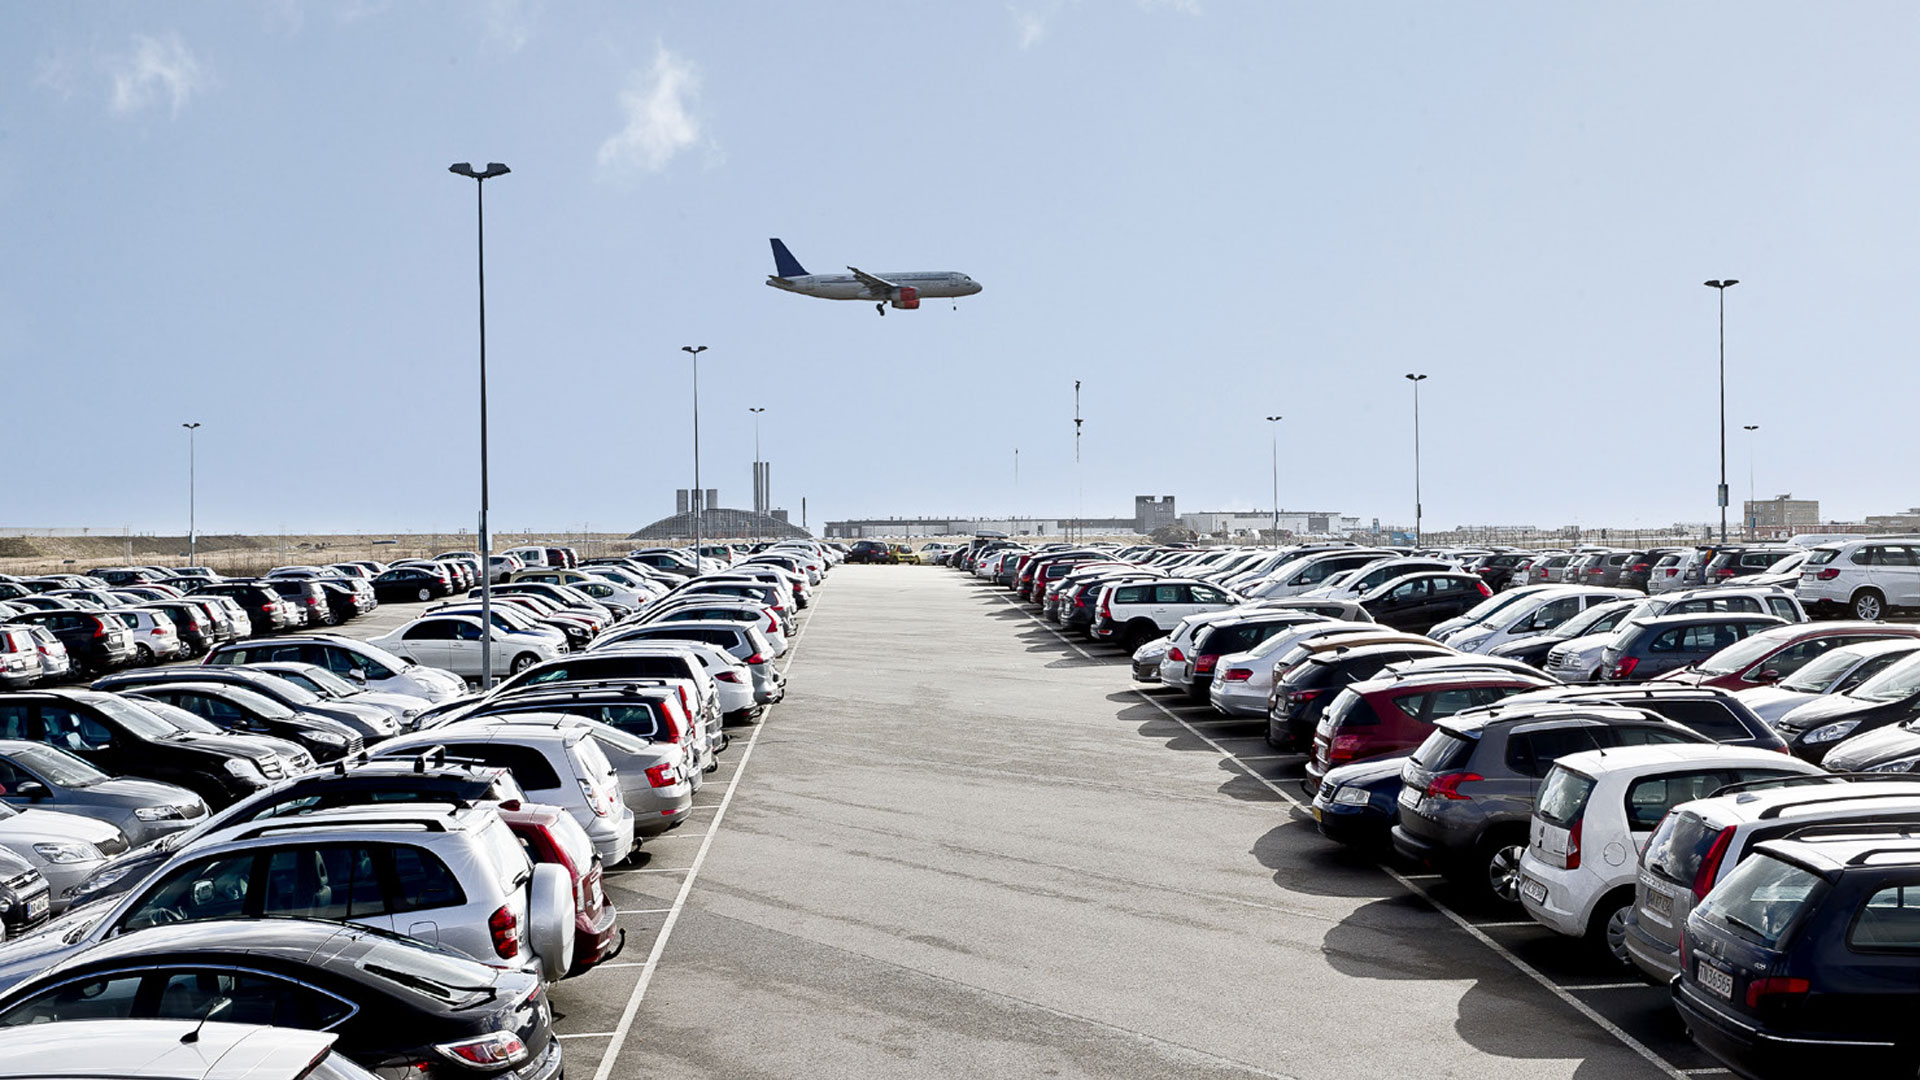 Ways To Make The Airport Parking Easy, Cheap And Hassle-Free